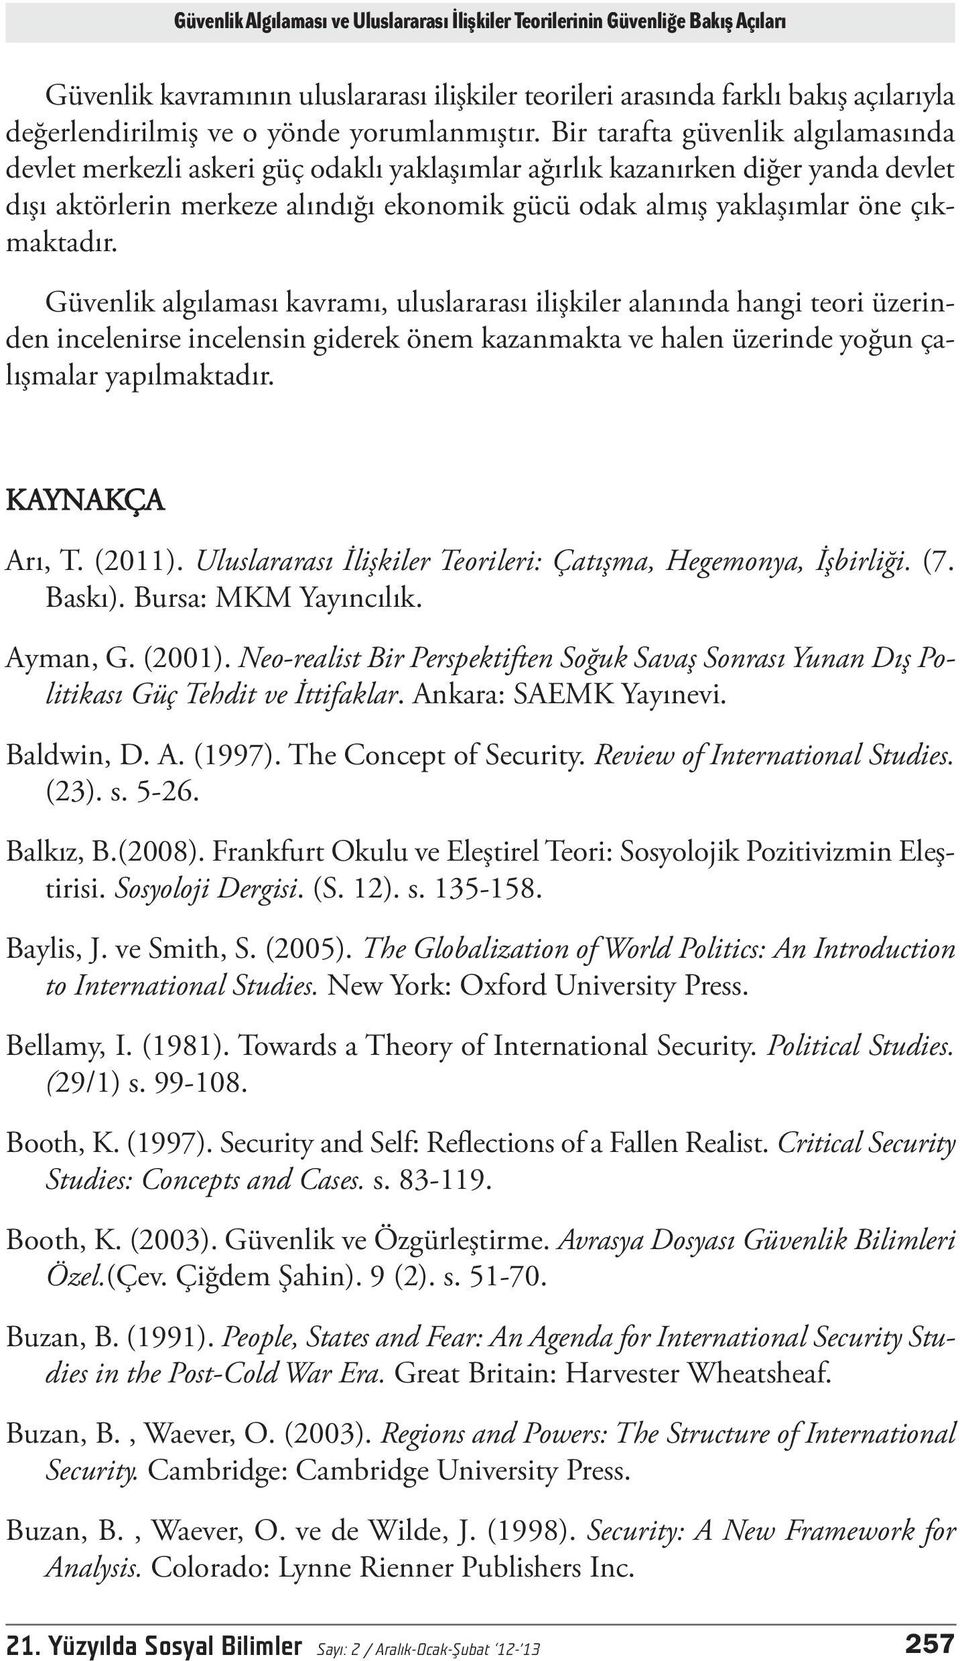 perspectives on ideology oxford canadatextbook pdf